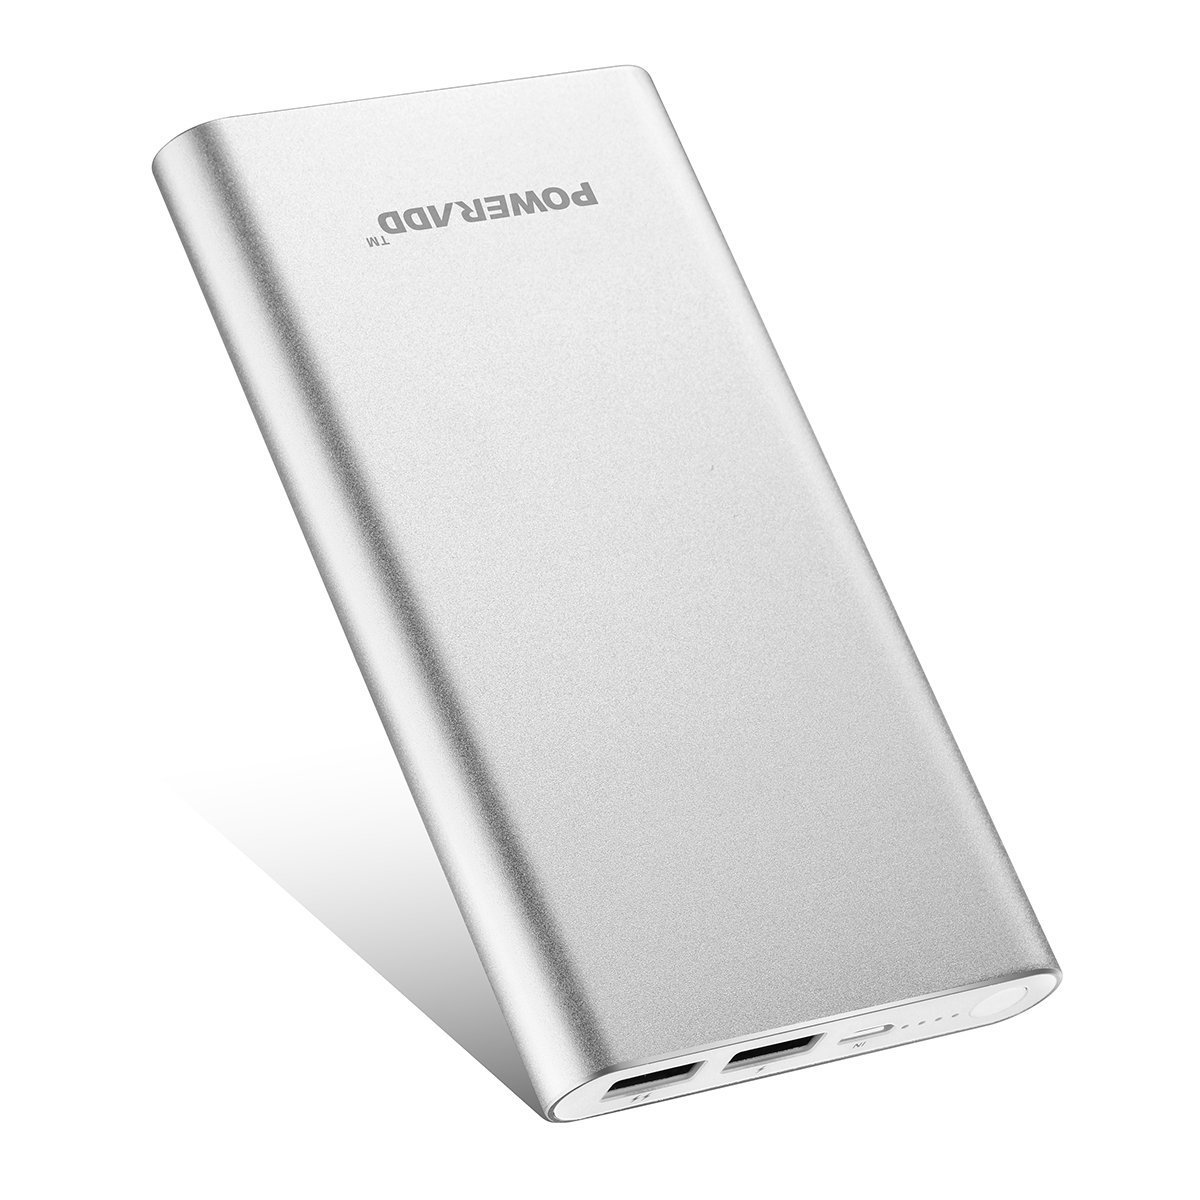 Poweradd 2nd Gen Pilot 2GS 10000mAh Power Bank, Dual USB Port 3.4A Portable Charger External Battery with High-Speed Charge for Smartphone and Tablet - Silver (Apple Cable Not Included)